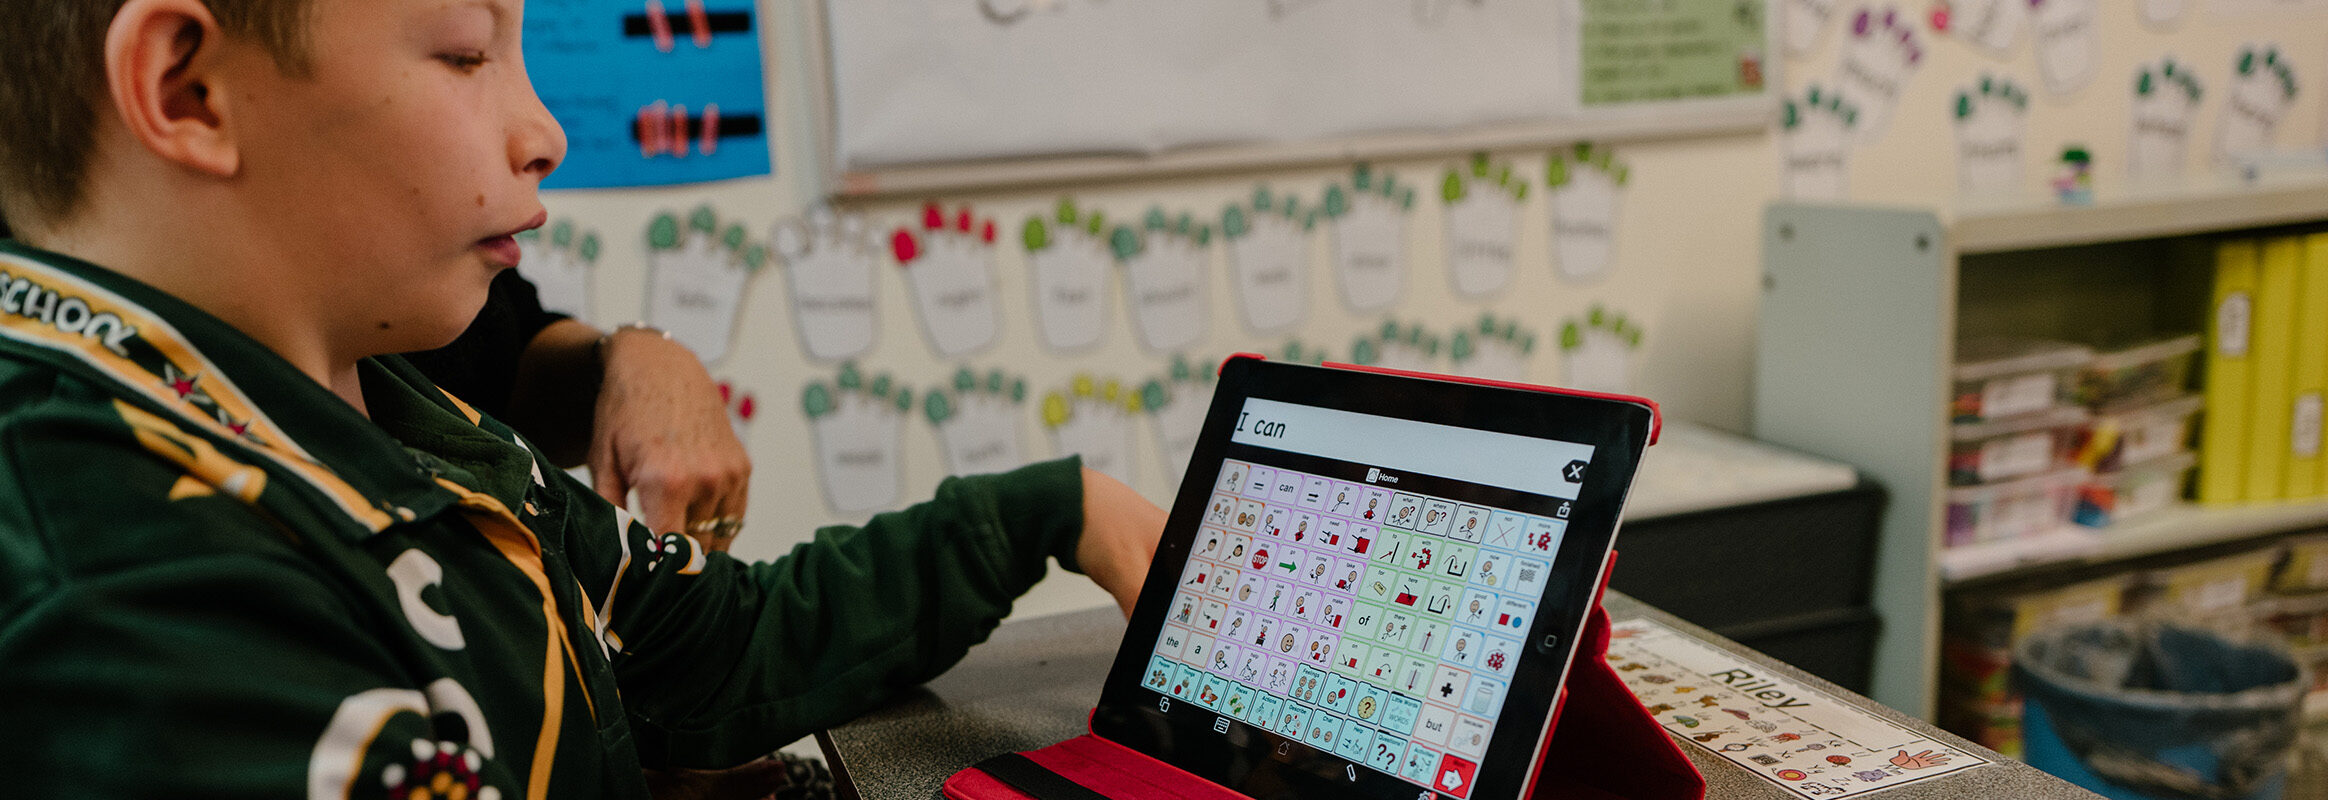 Young boy in classroom learning with iPad AAC System